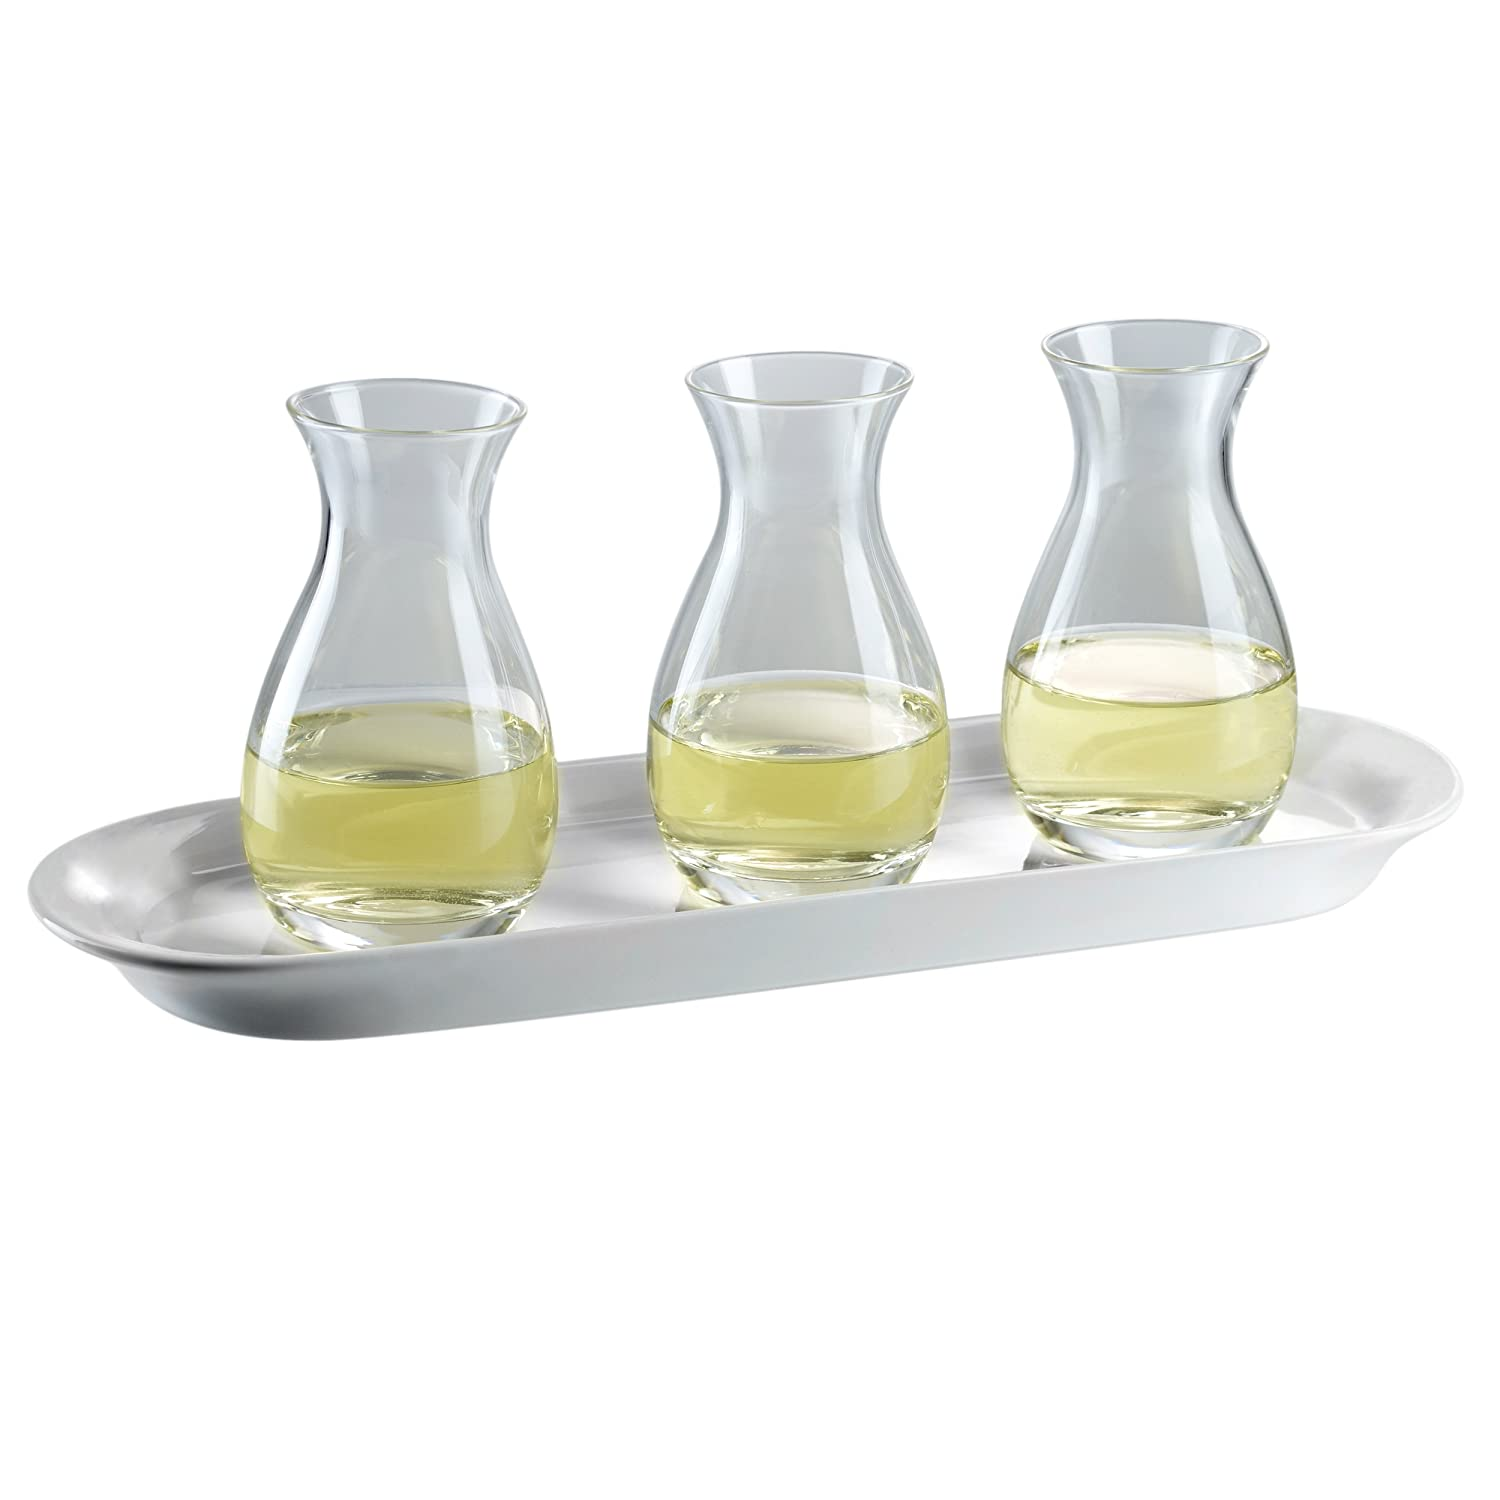 Artland White Wine Cooling Carafe, Transparent 60546A